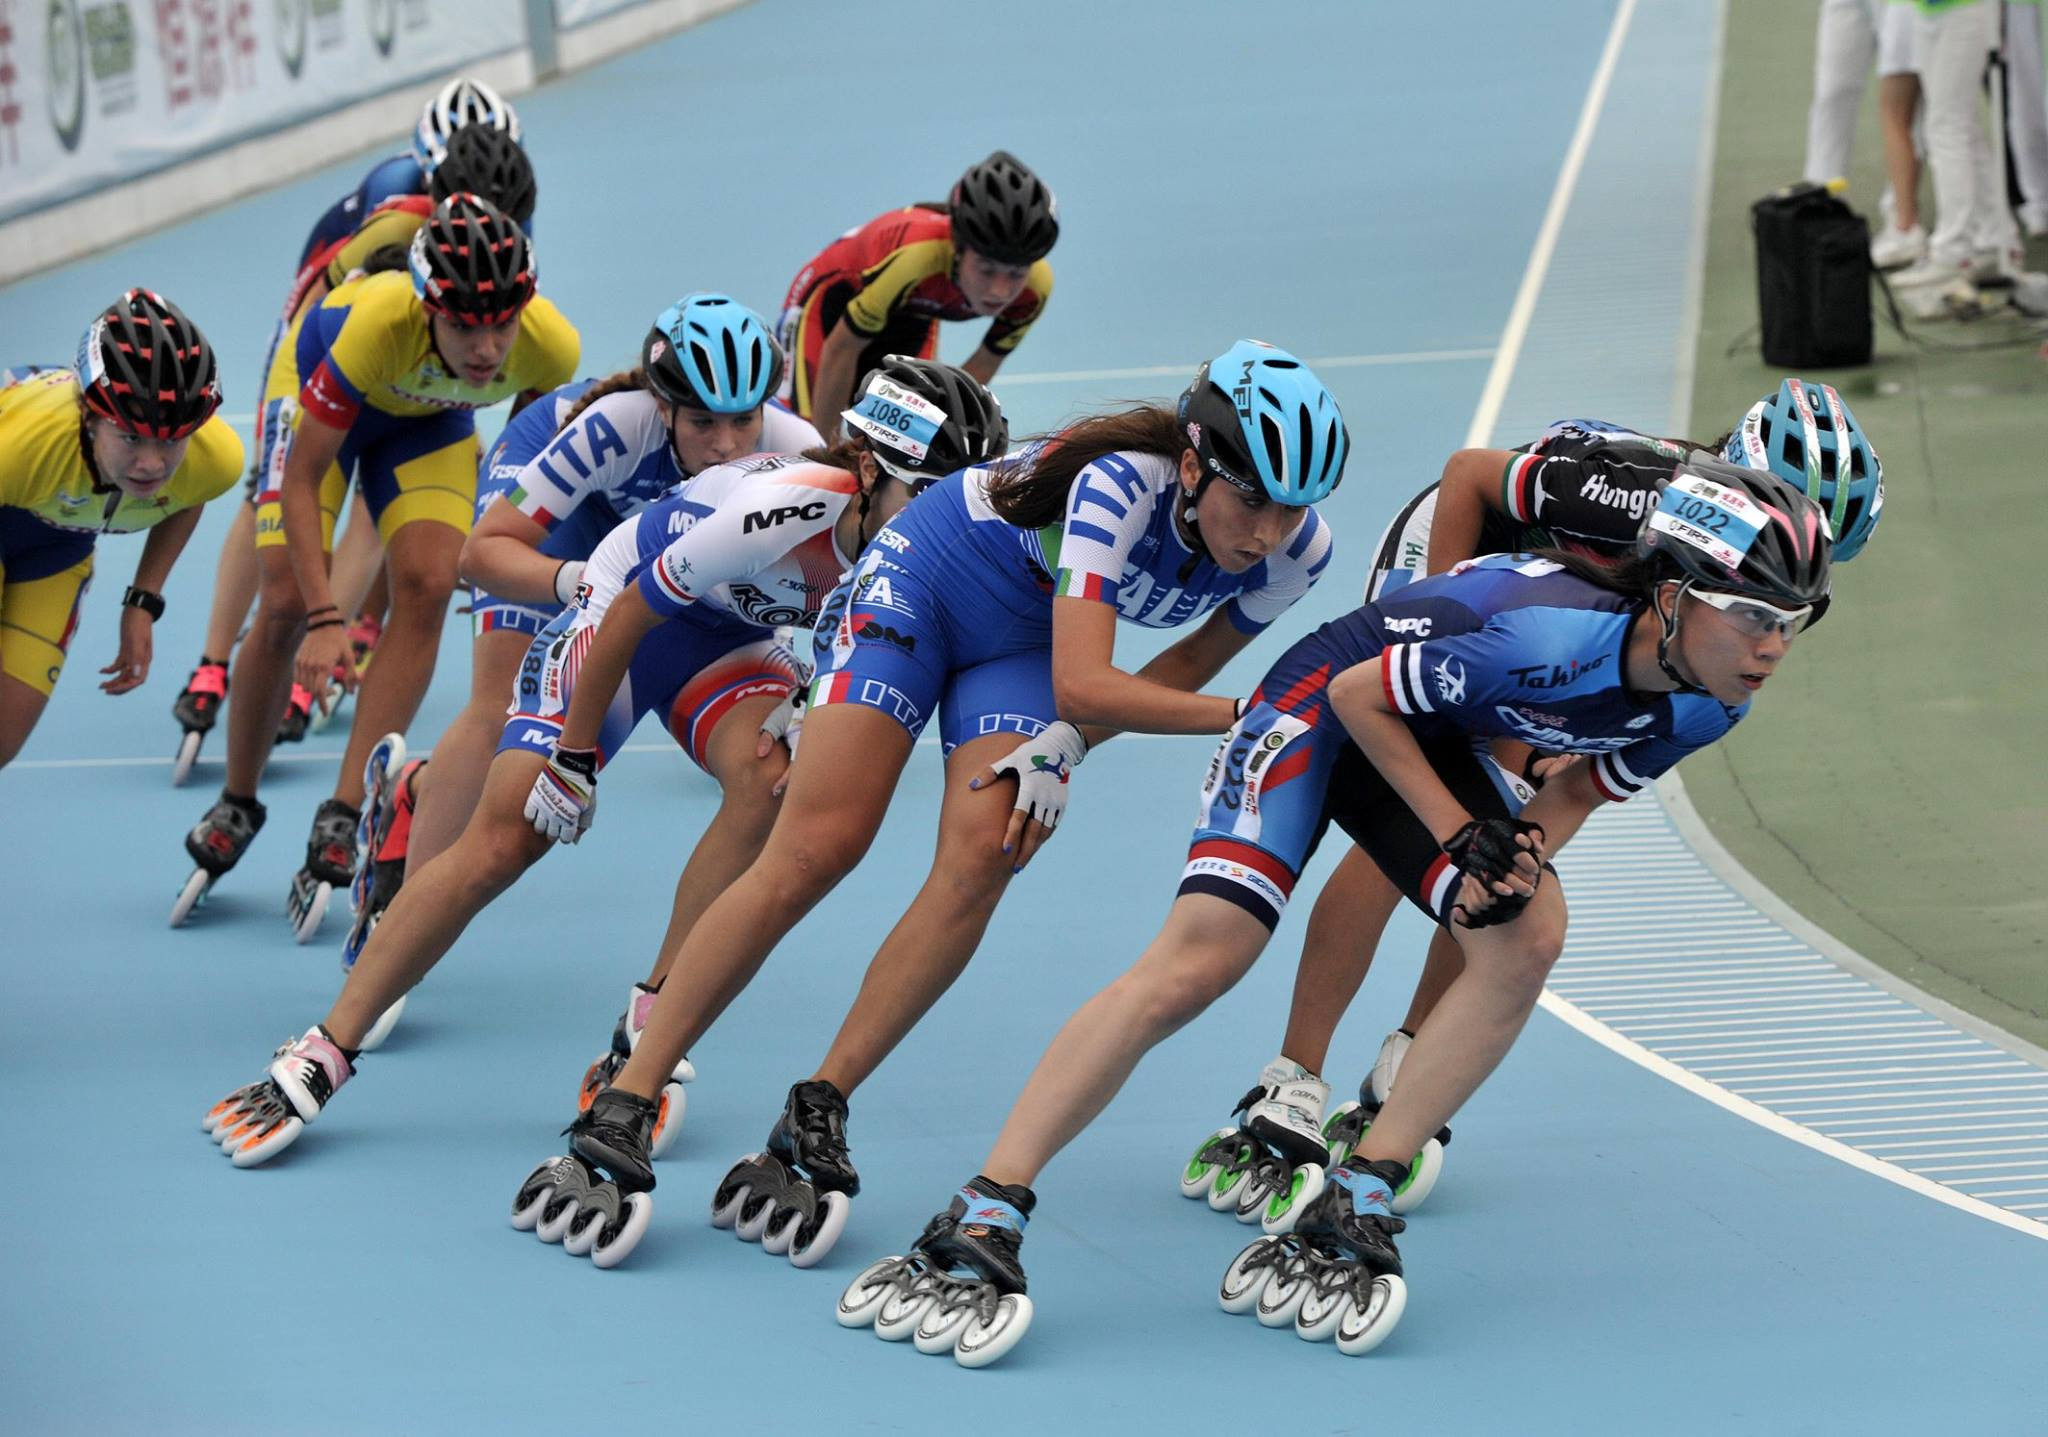 Colombia enjoy speed skating success at World Roller Games